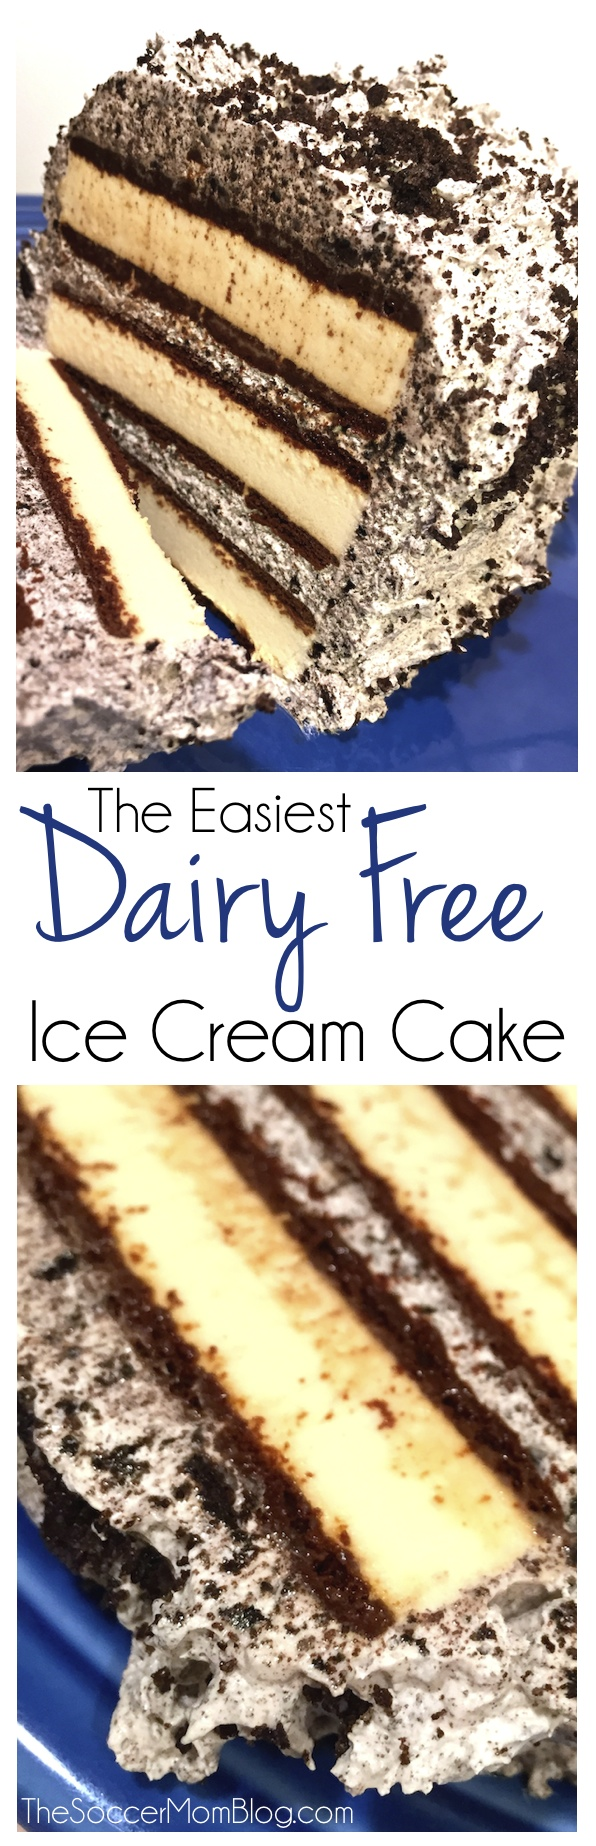 A dairy free version of the most popular recipe on my blog: Cookies & Cream Ice Cream Cake. So easy to make!